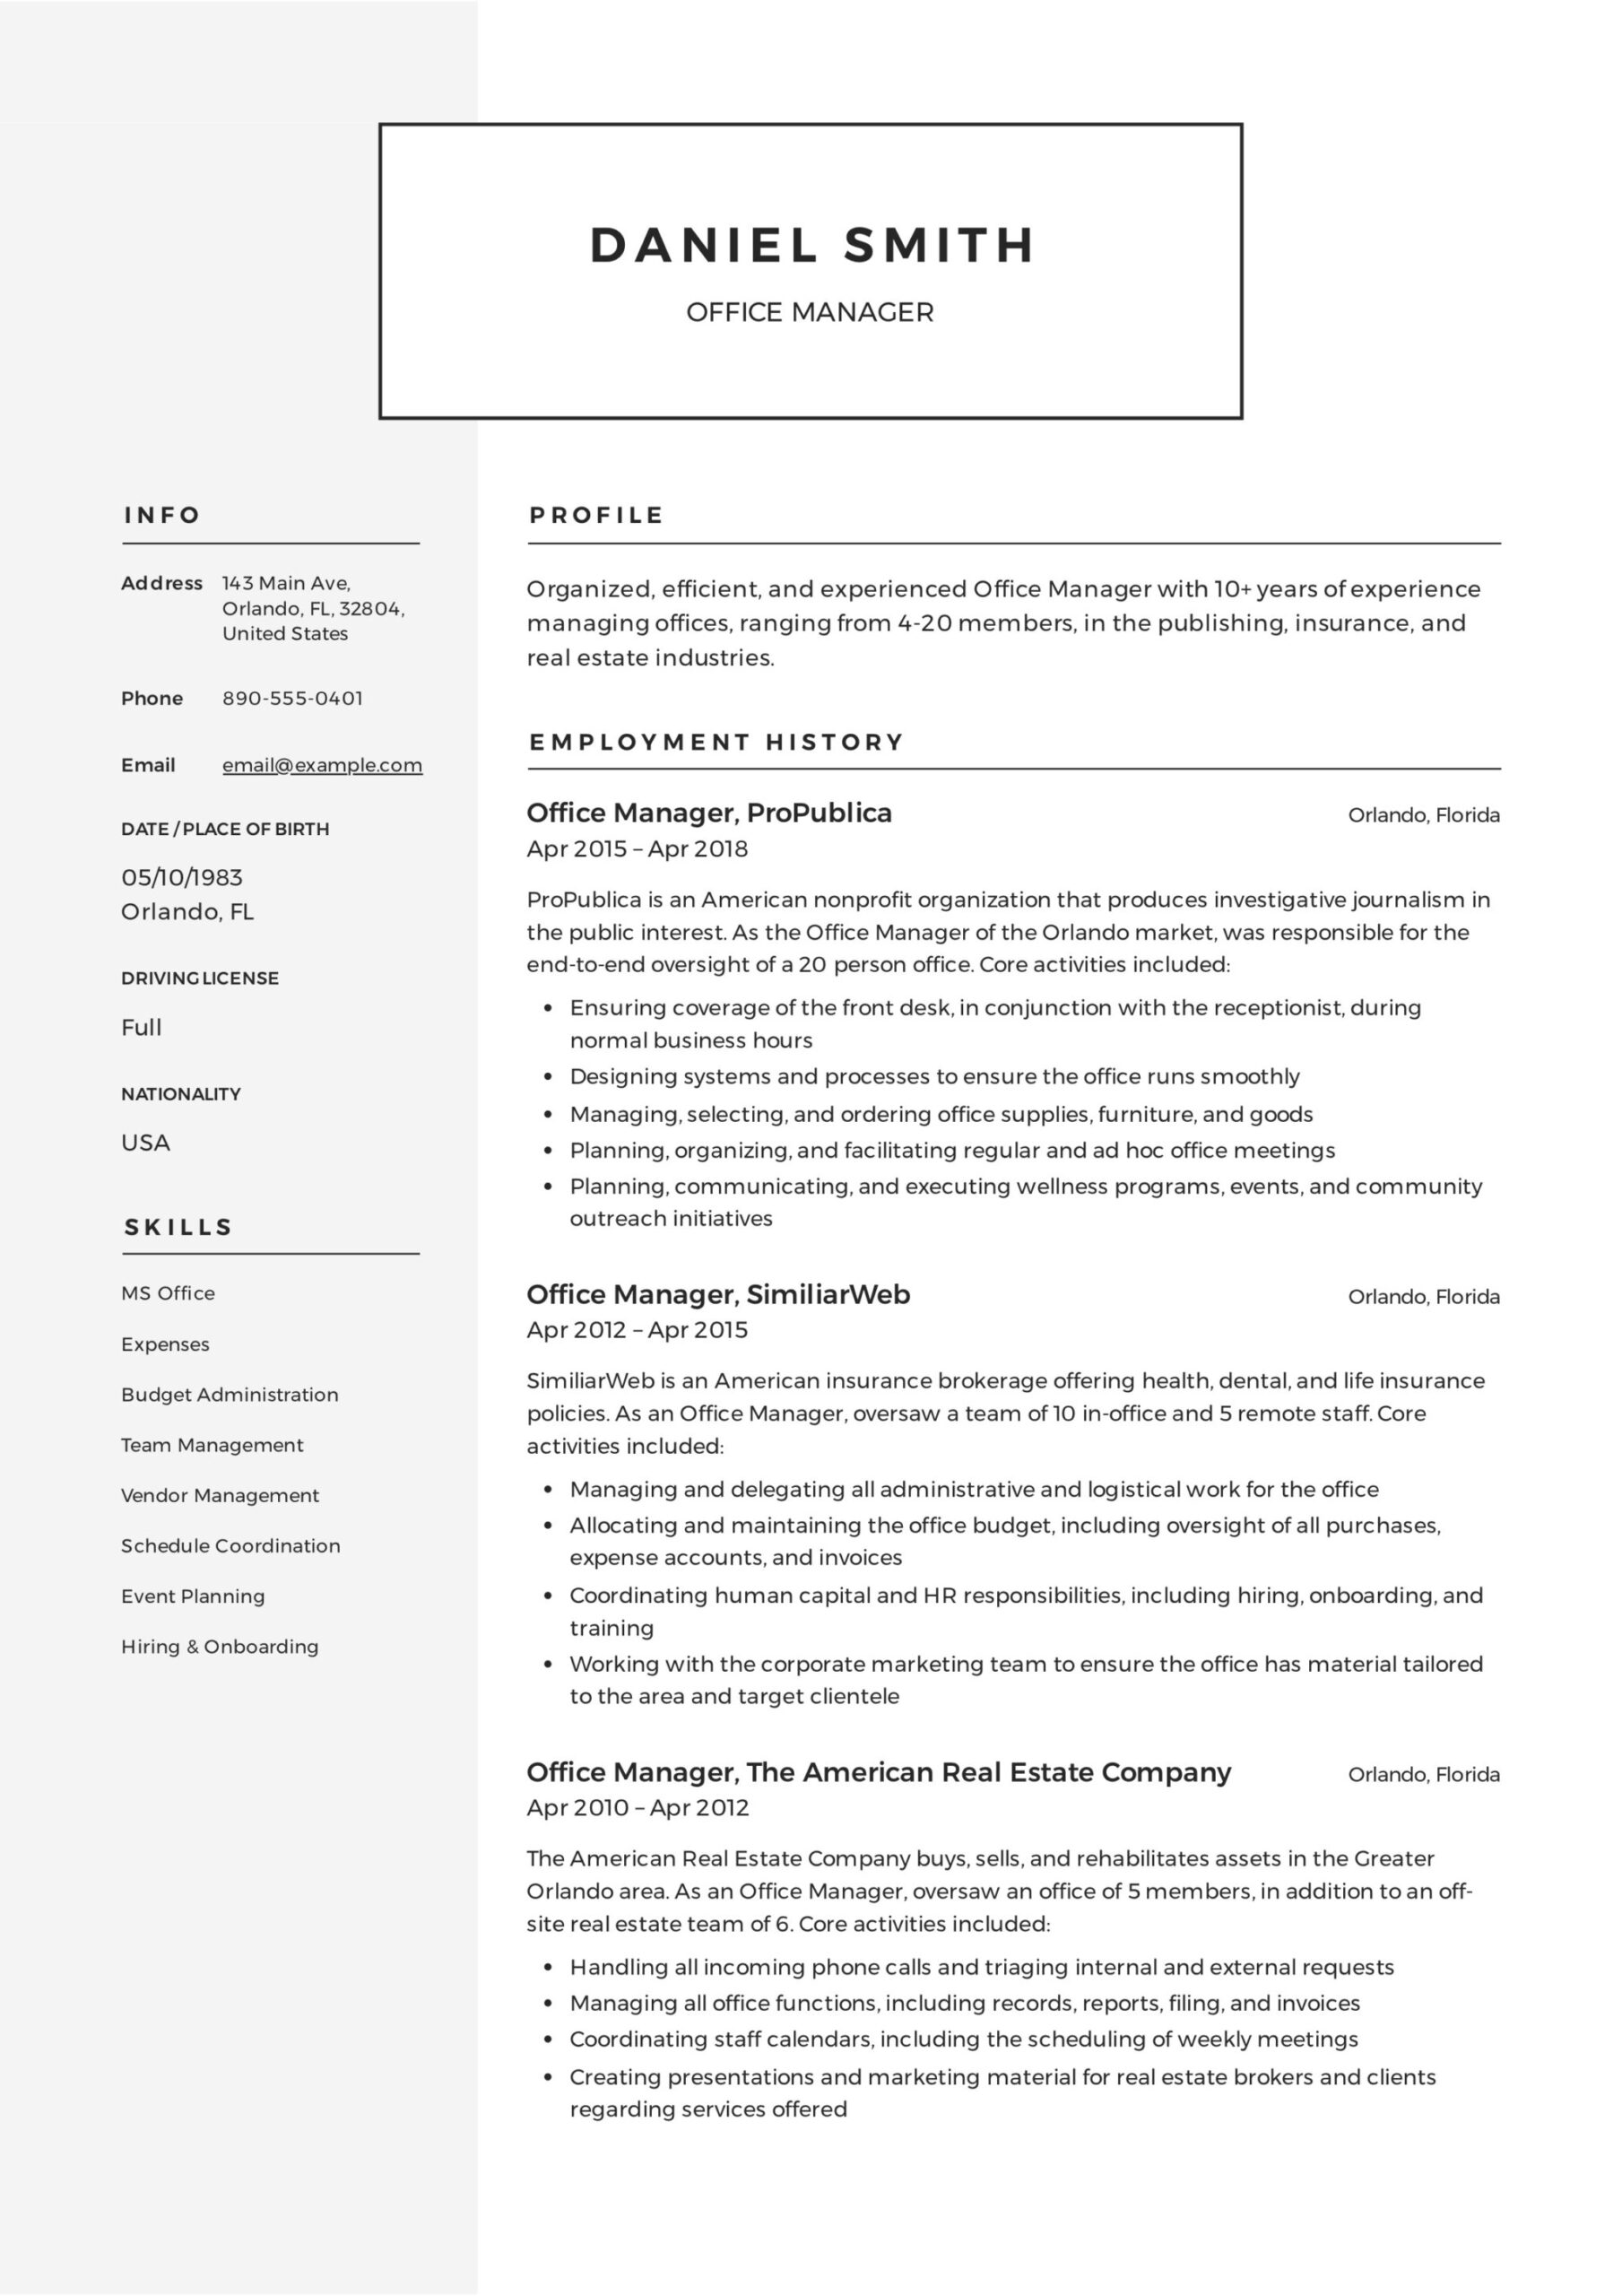 office manager resume guide samples pdf hire desk builder sample professional summary for Resume Hire Desk Resume Builder